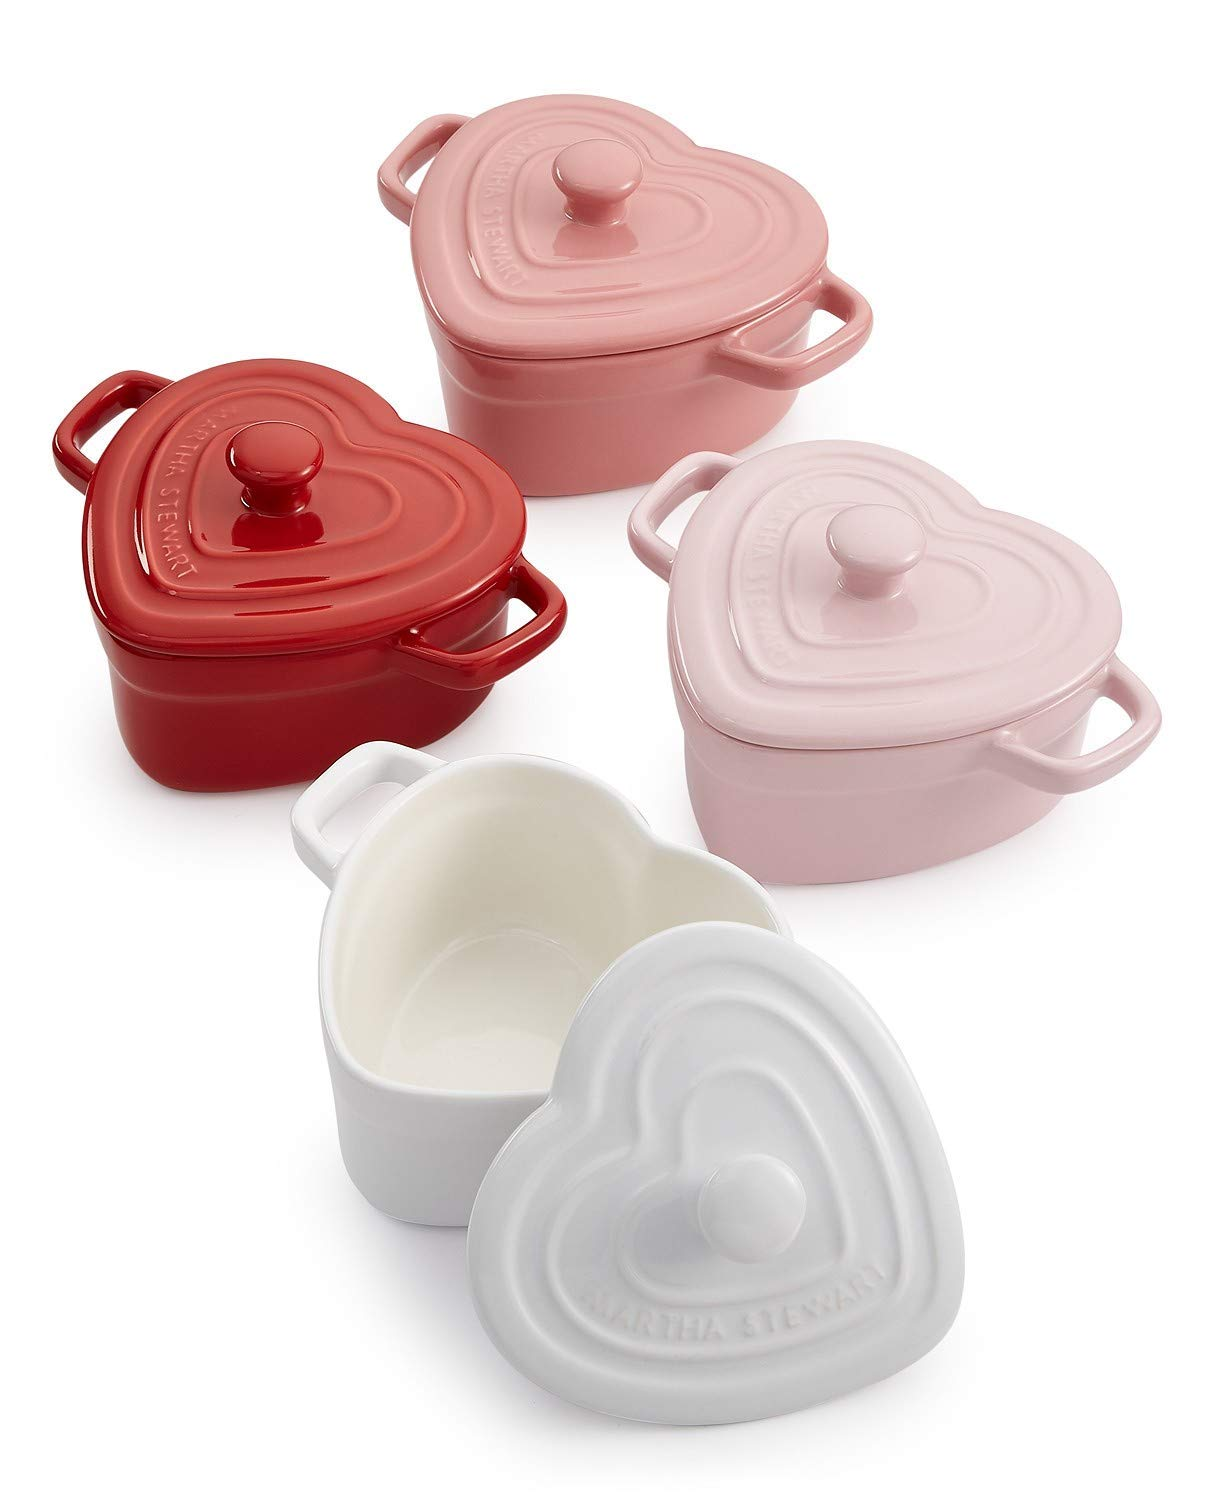 Martha Stewart Collector's 4 pc Heart-Shaped Cocottes Set, 11 oz each Federated Merchandising Group